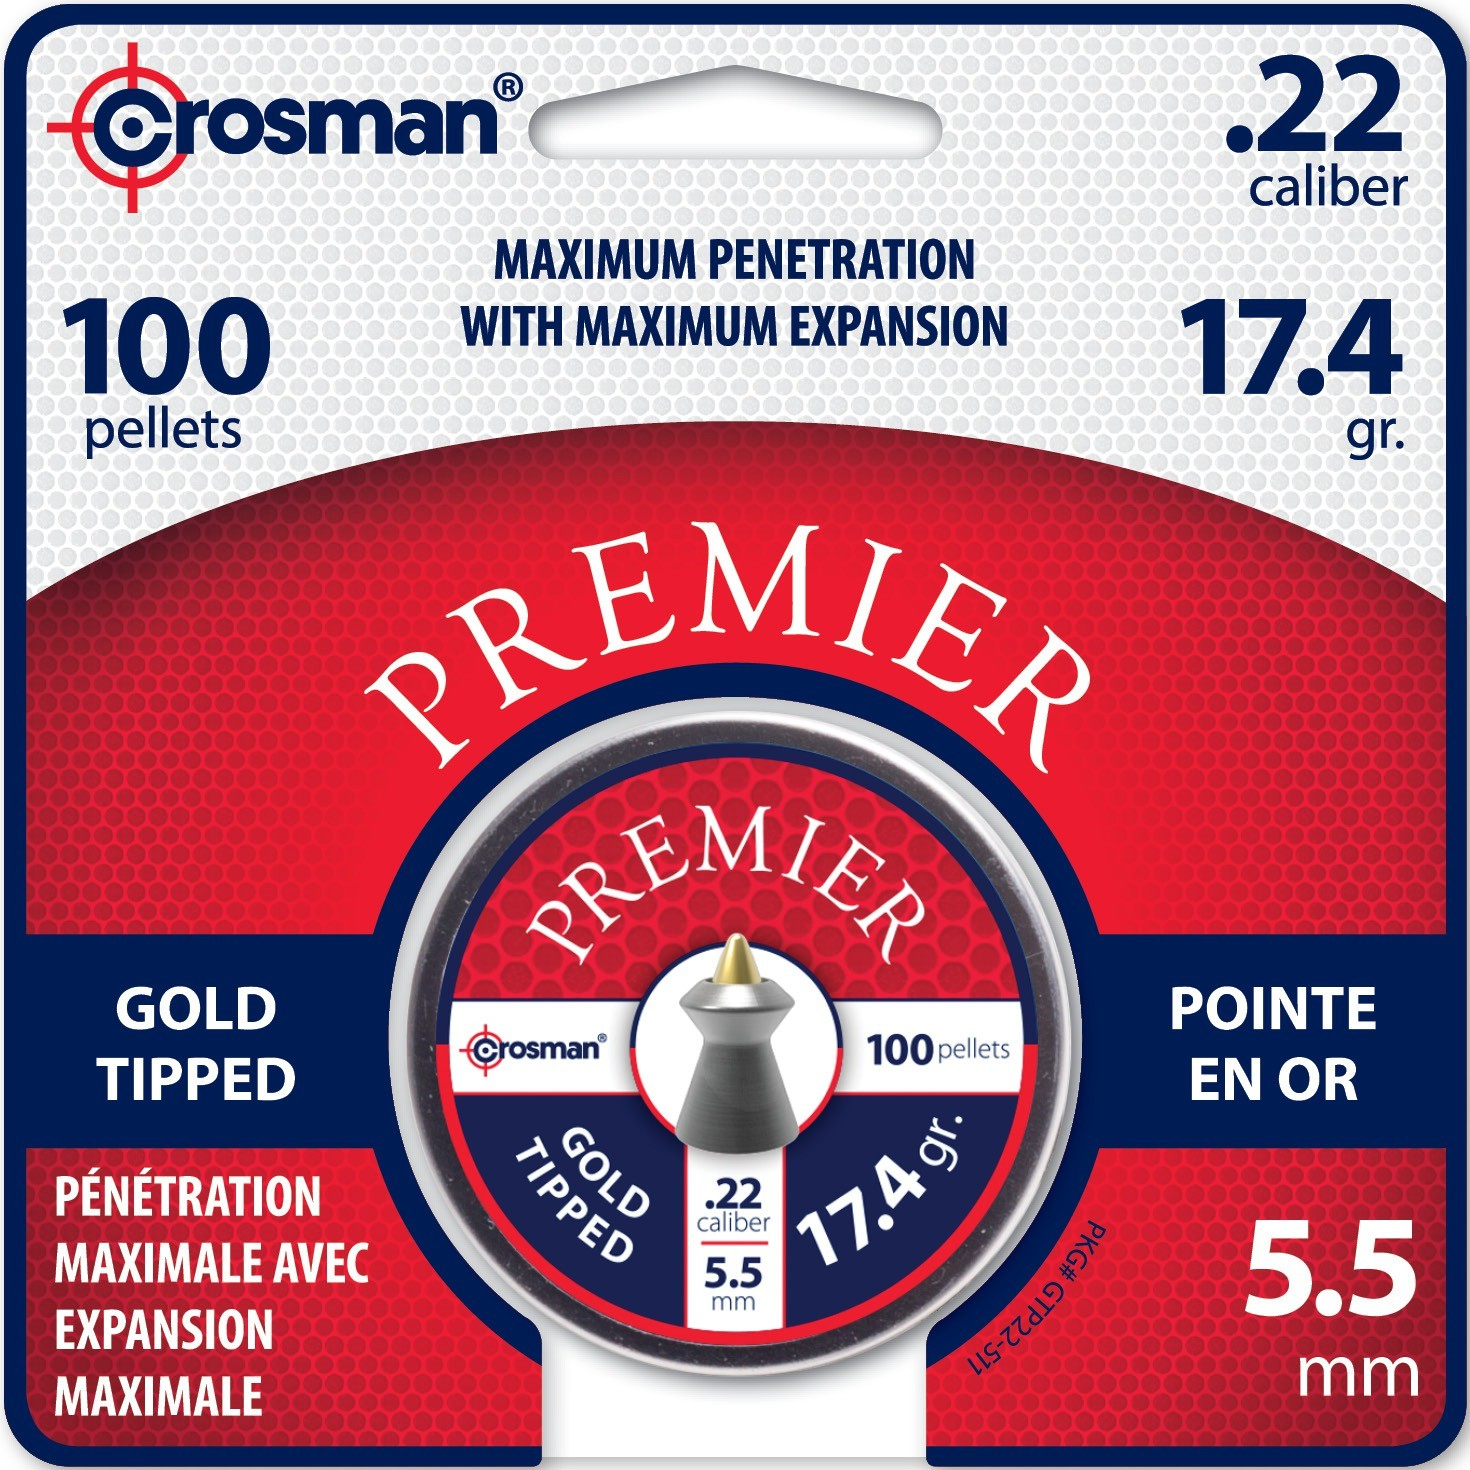 Crosman .22 Pellet GTP22 Ammunition Gold Tipped 17.4 Grain, 100 Count by Crosman